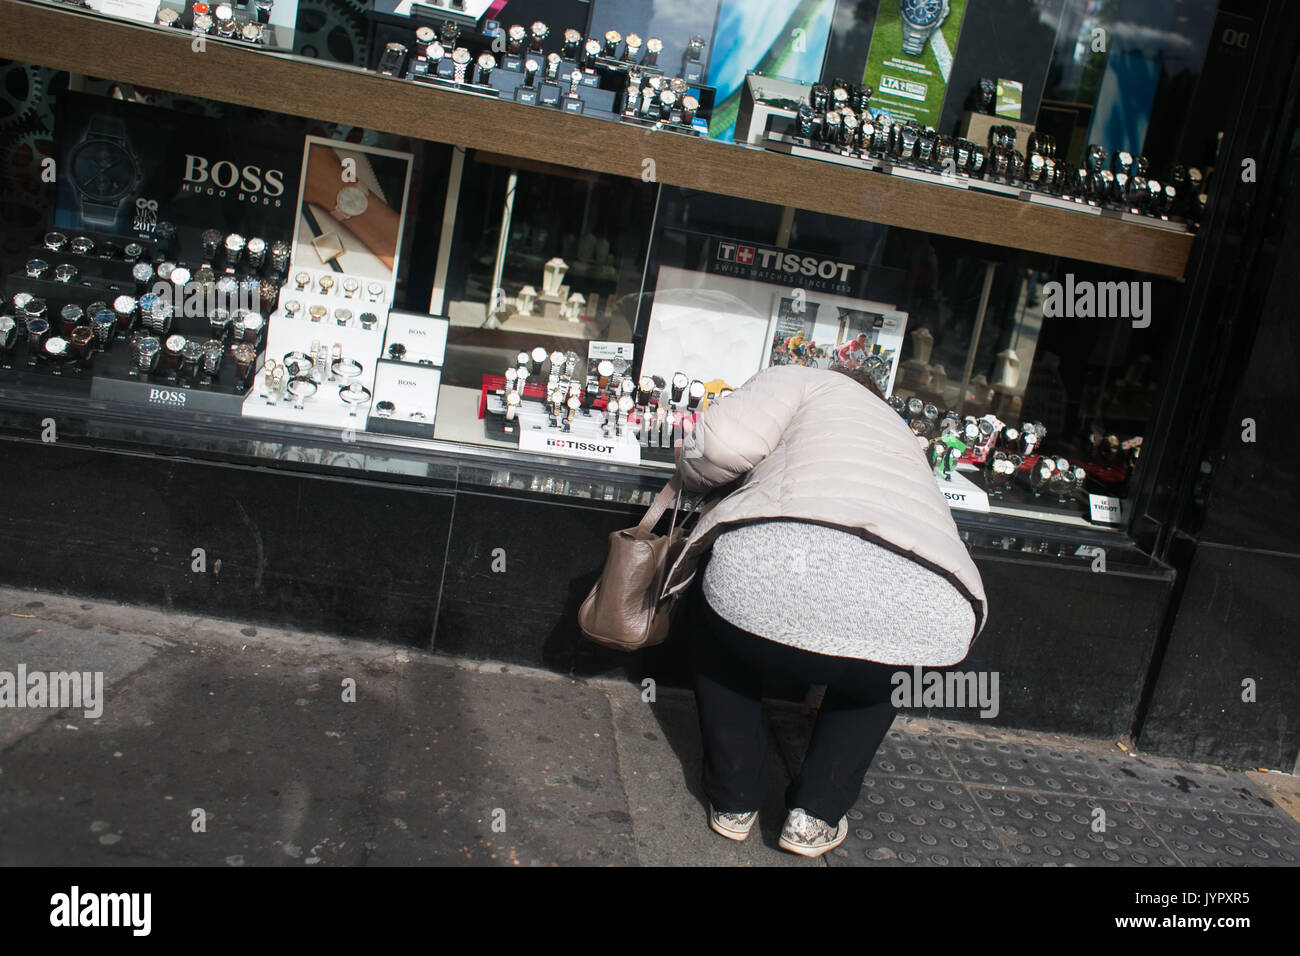 A woman bends over to pick something up in front of a watch shop in Central Edinburgh. - Stock Image